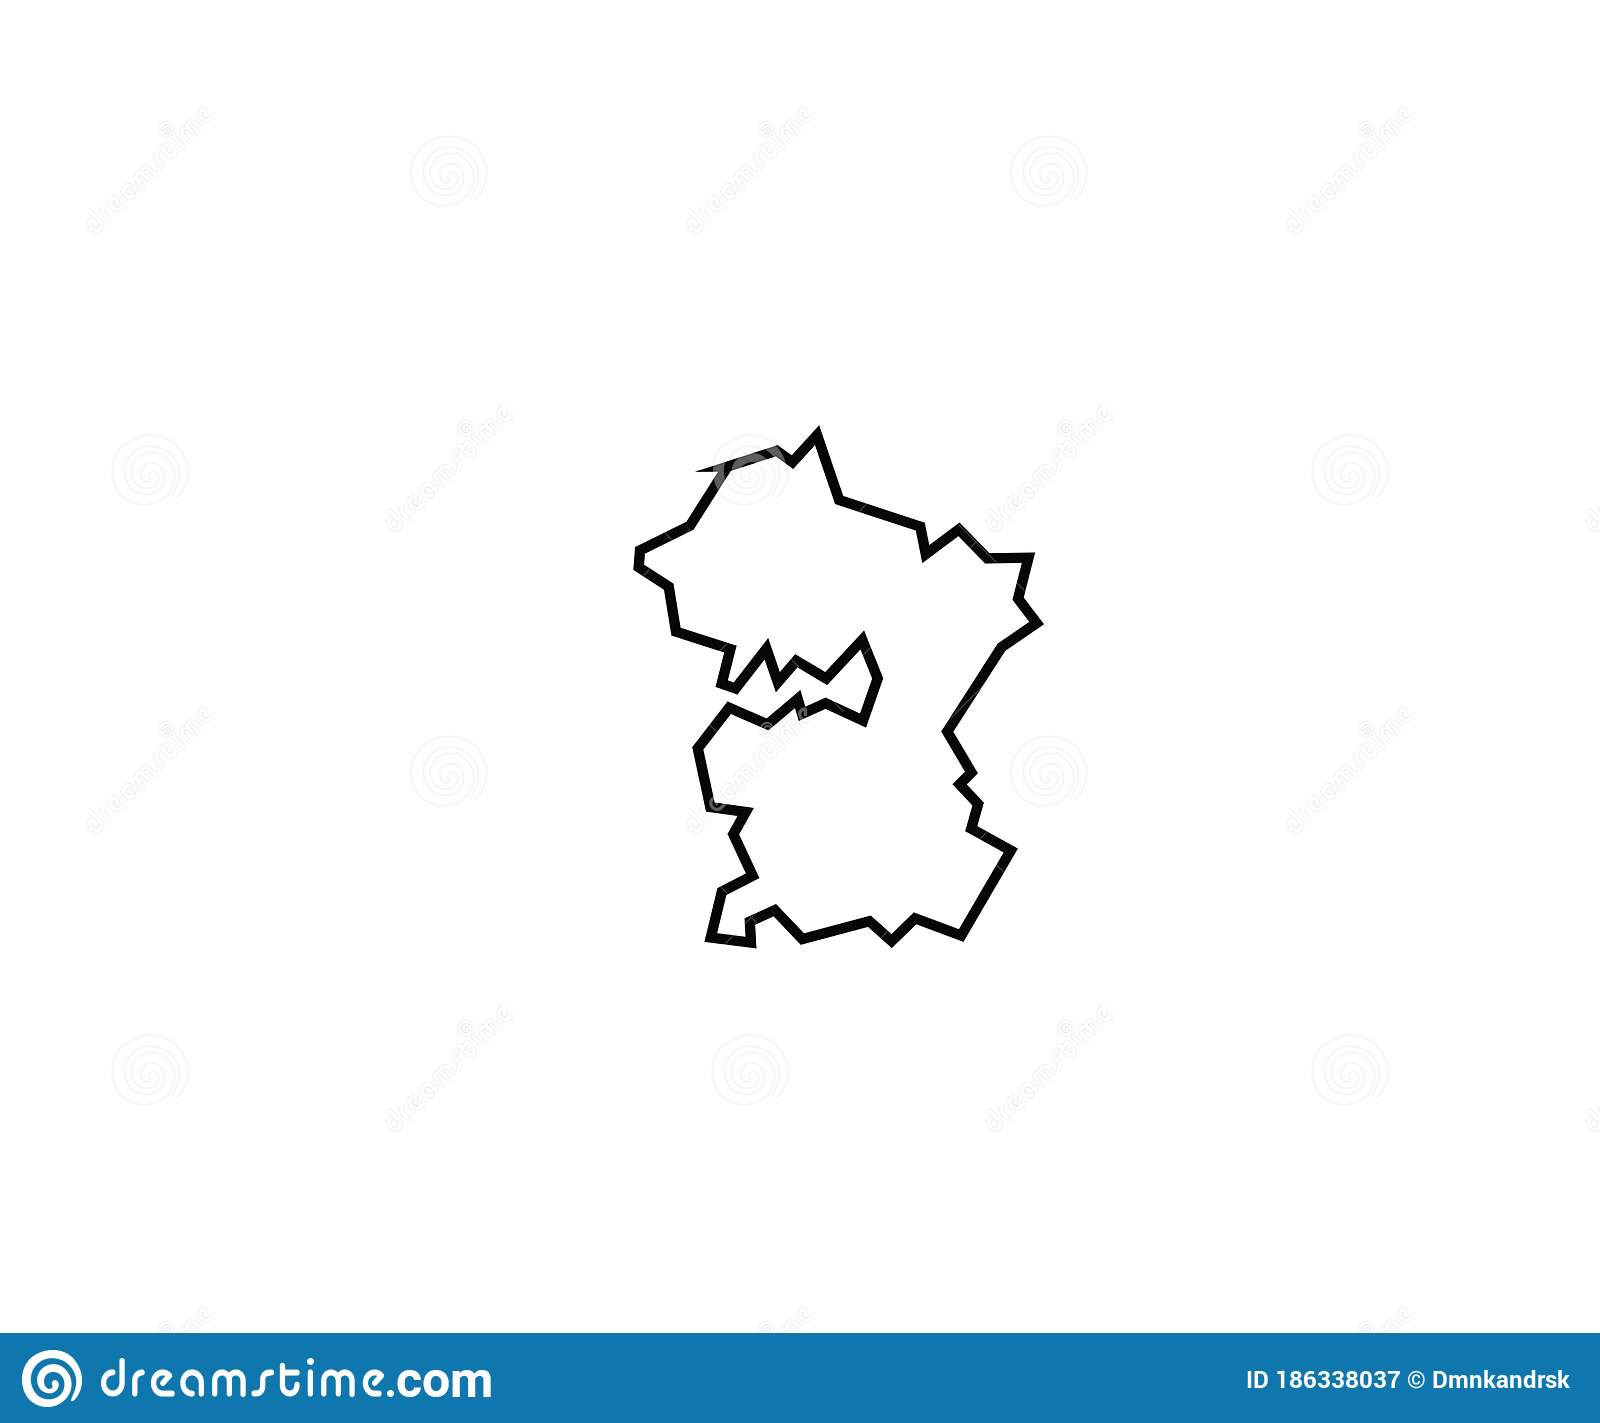 Picture of: Moscow Outline Map Russia Region Oblast Stock Vector Illustration Of Continent European 186338037